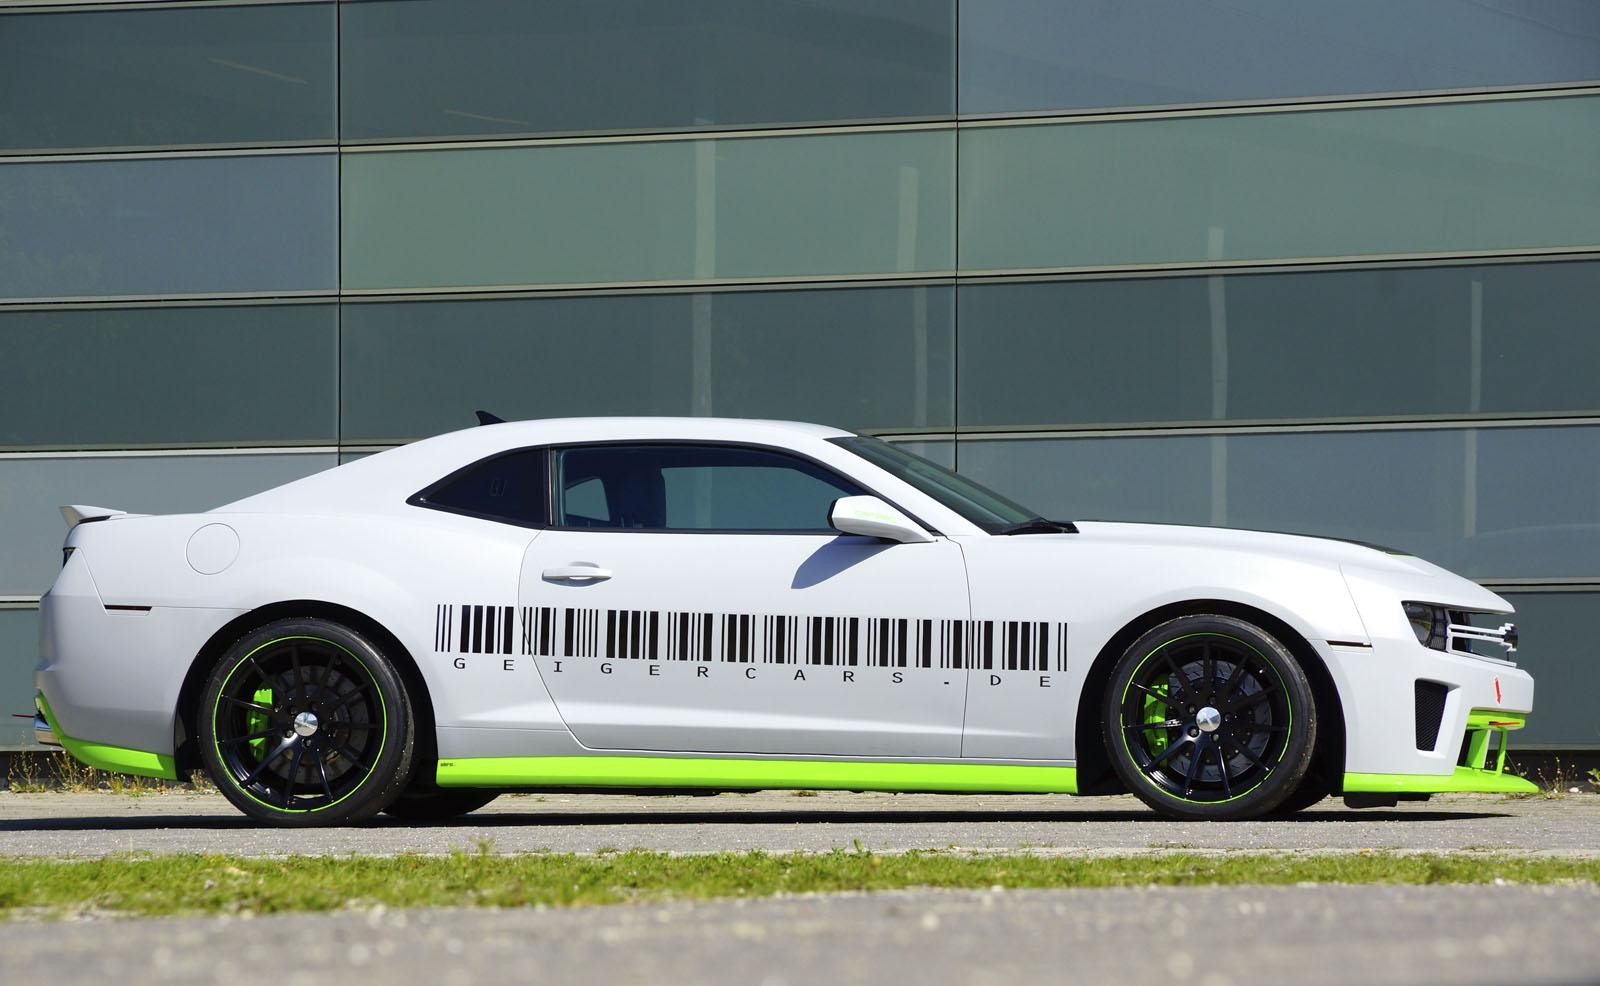 Chevrolet Cars - News: Geigercars tuned Camaro LS9